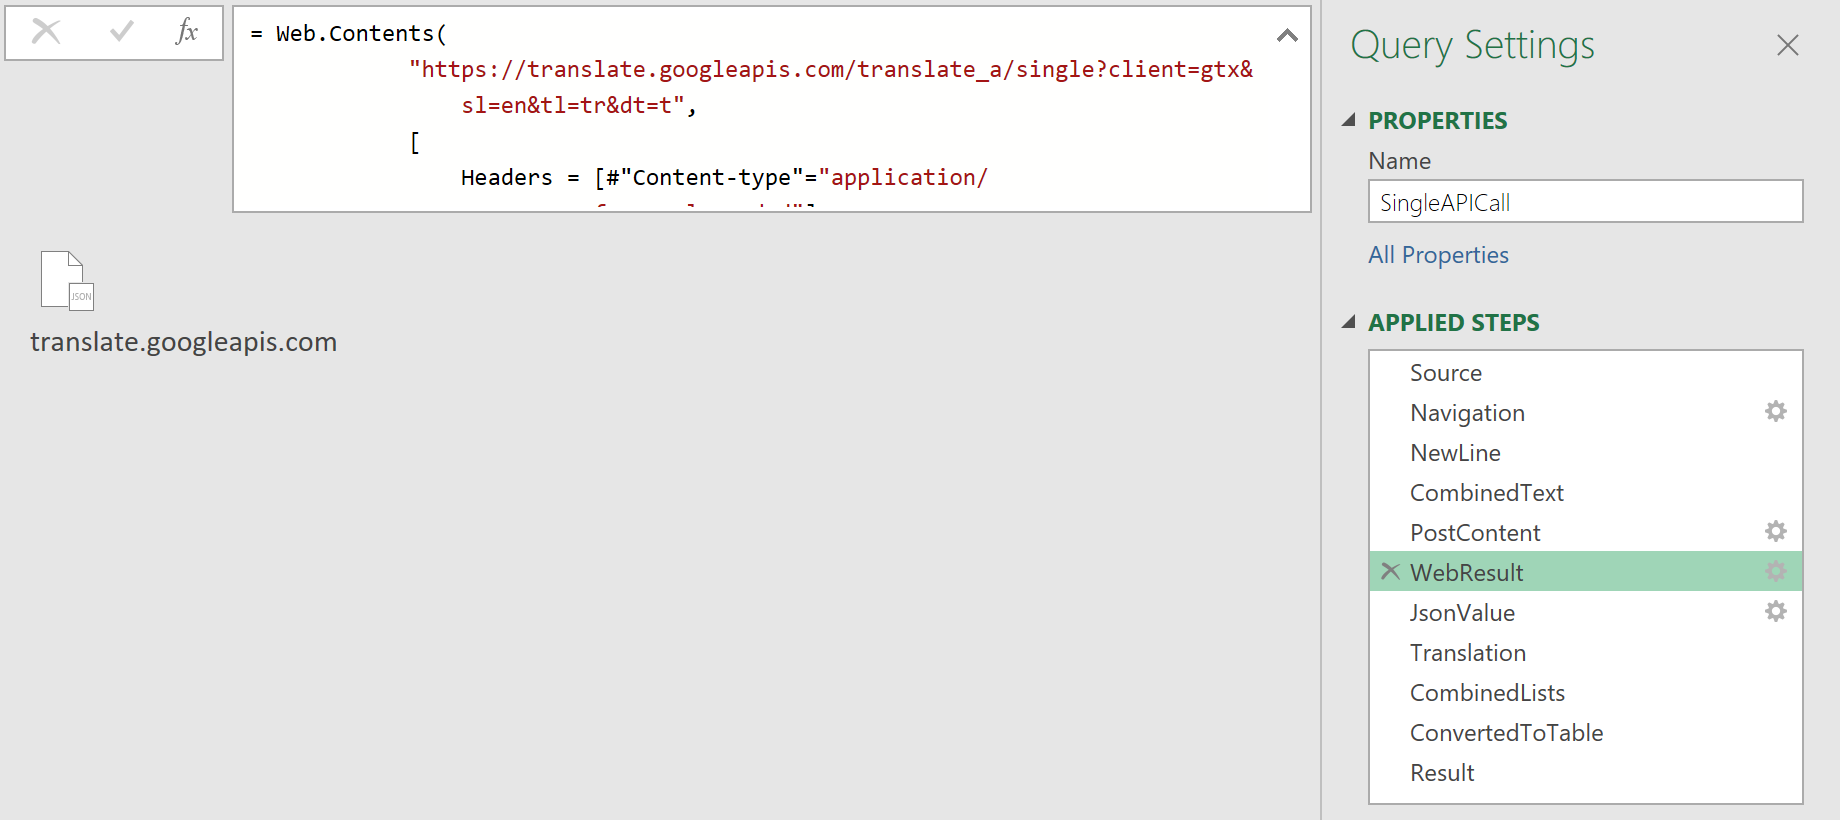 Web.Contents function with options